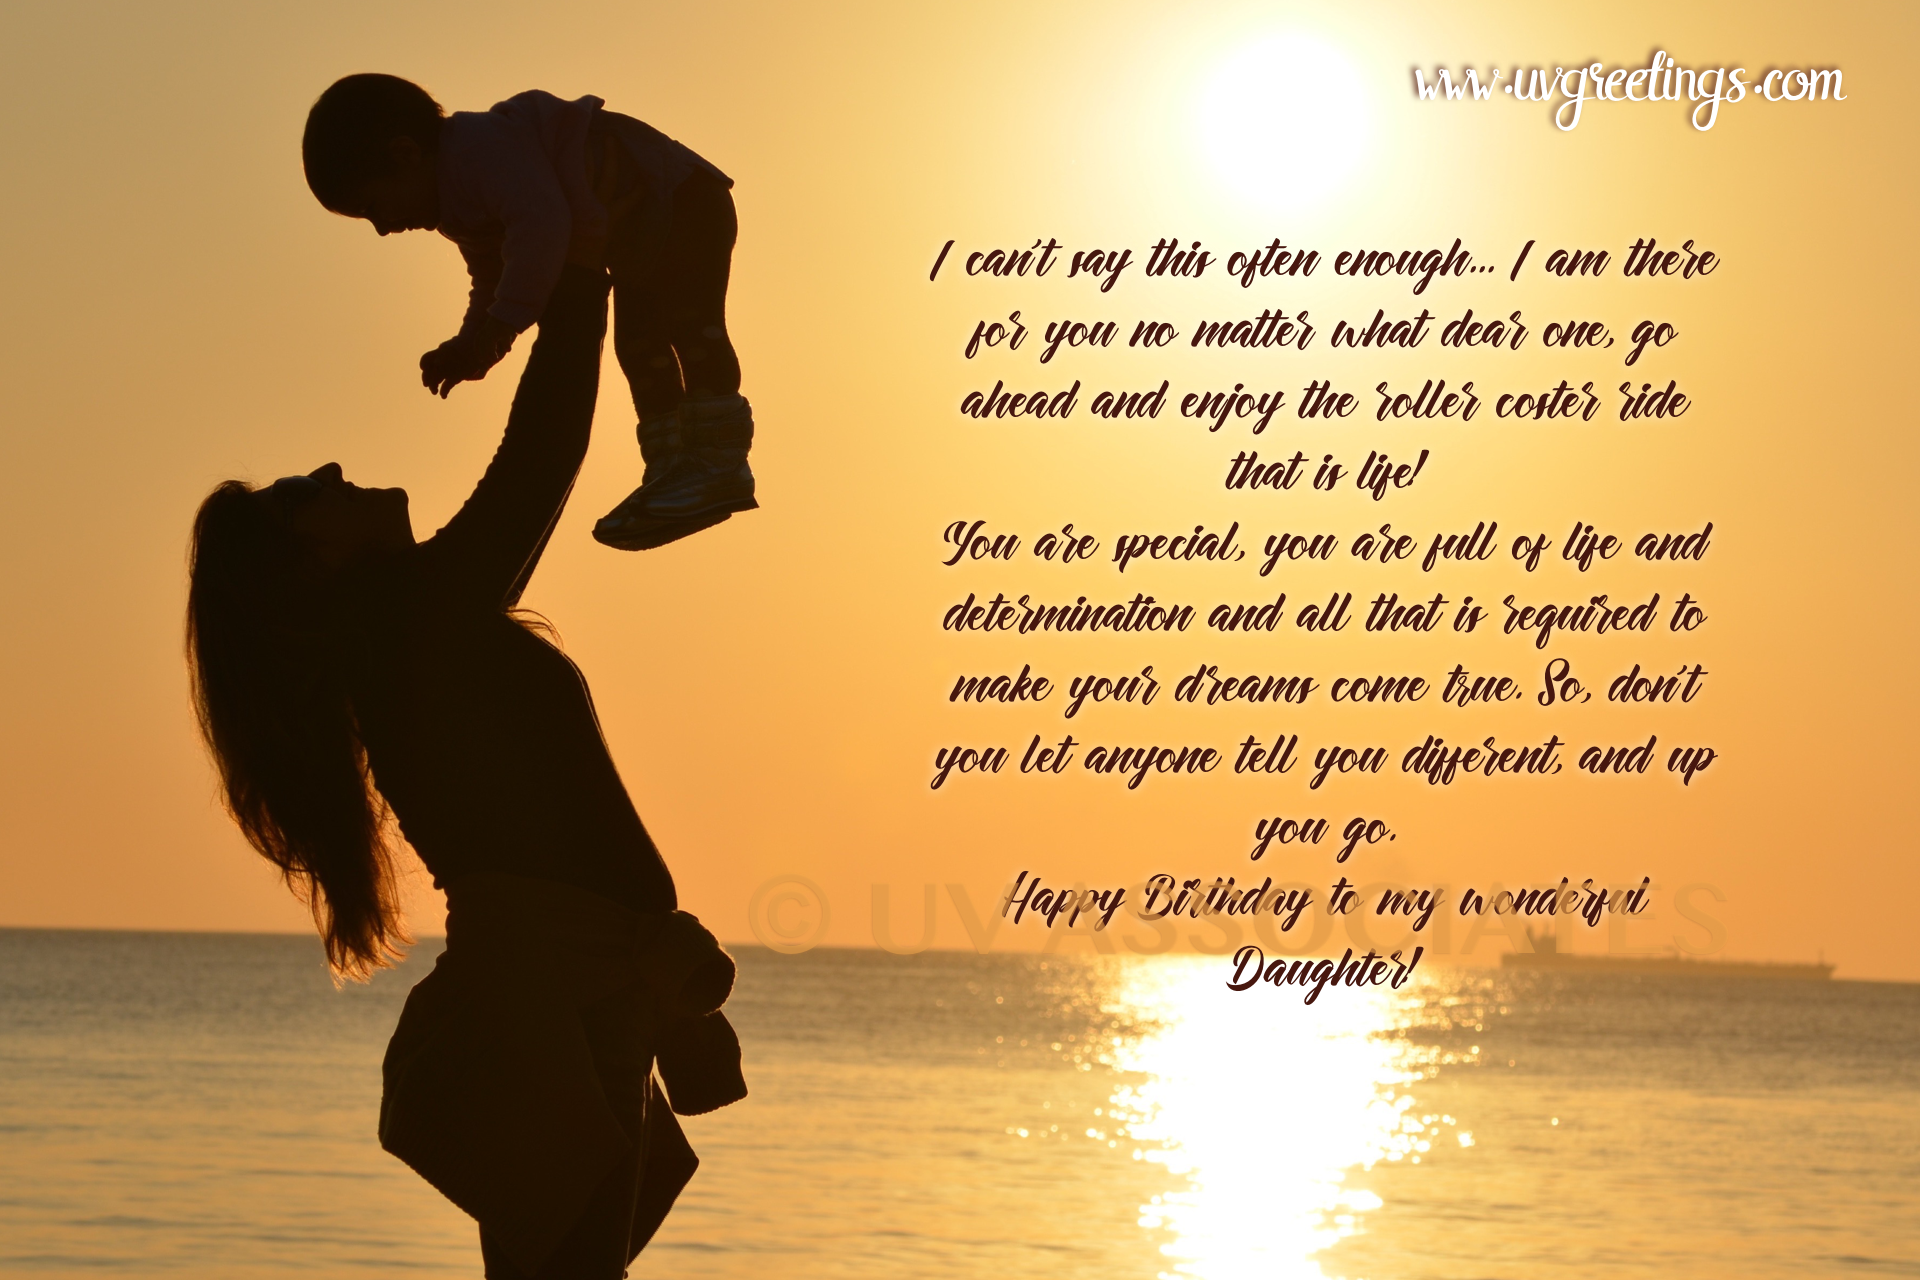 Happy Birthday Daughter Quotes Texts And Poems From Mom